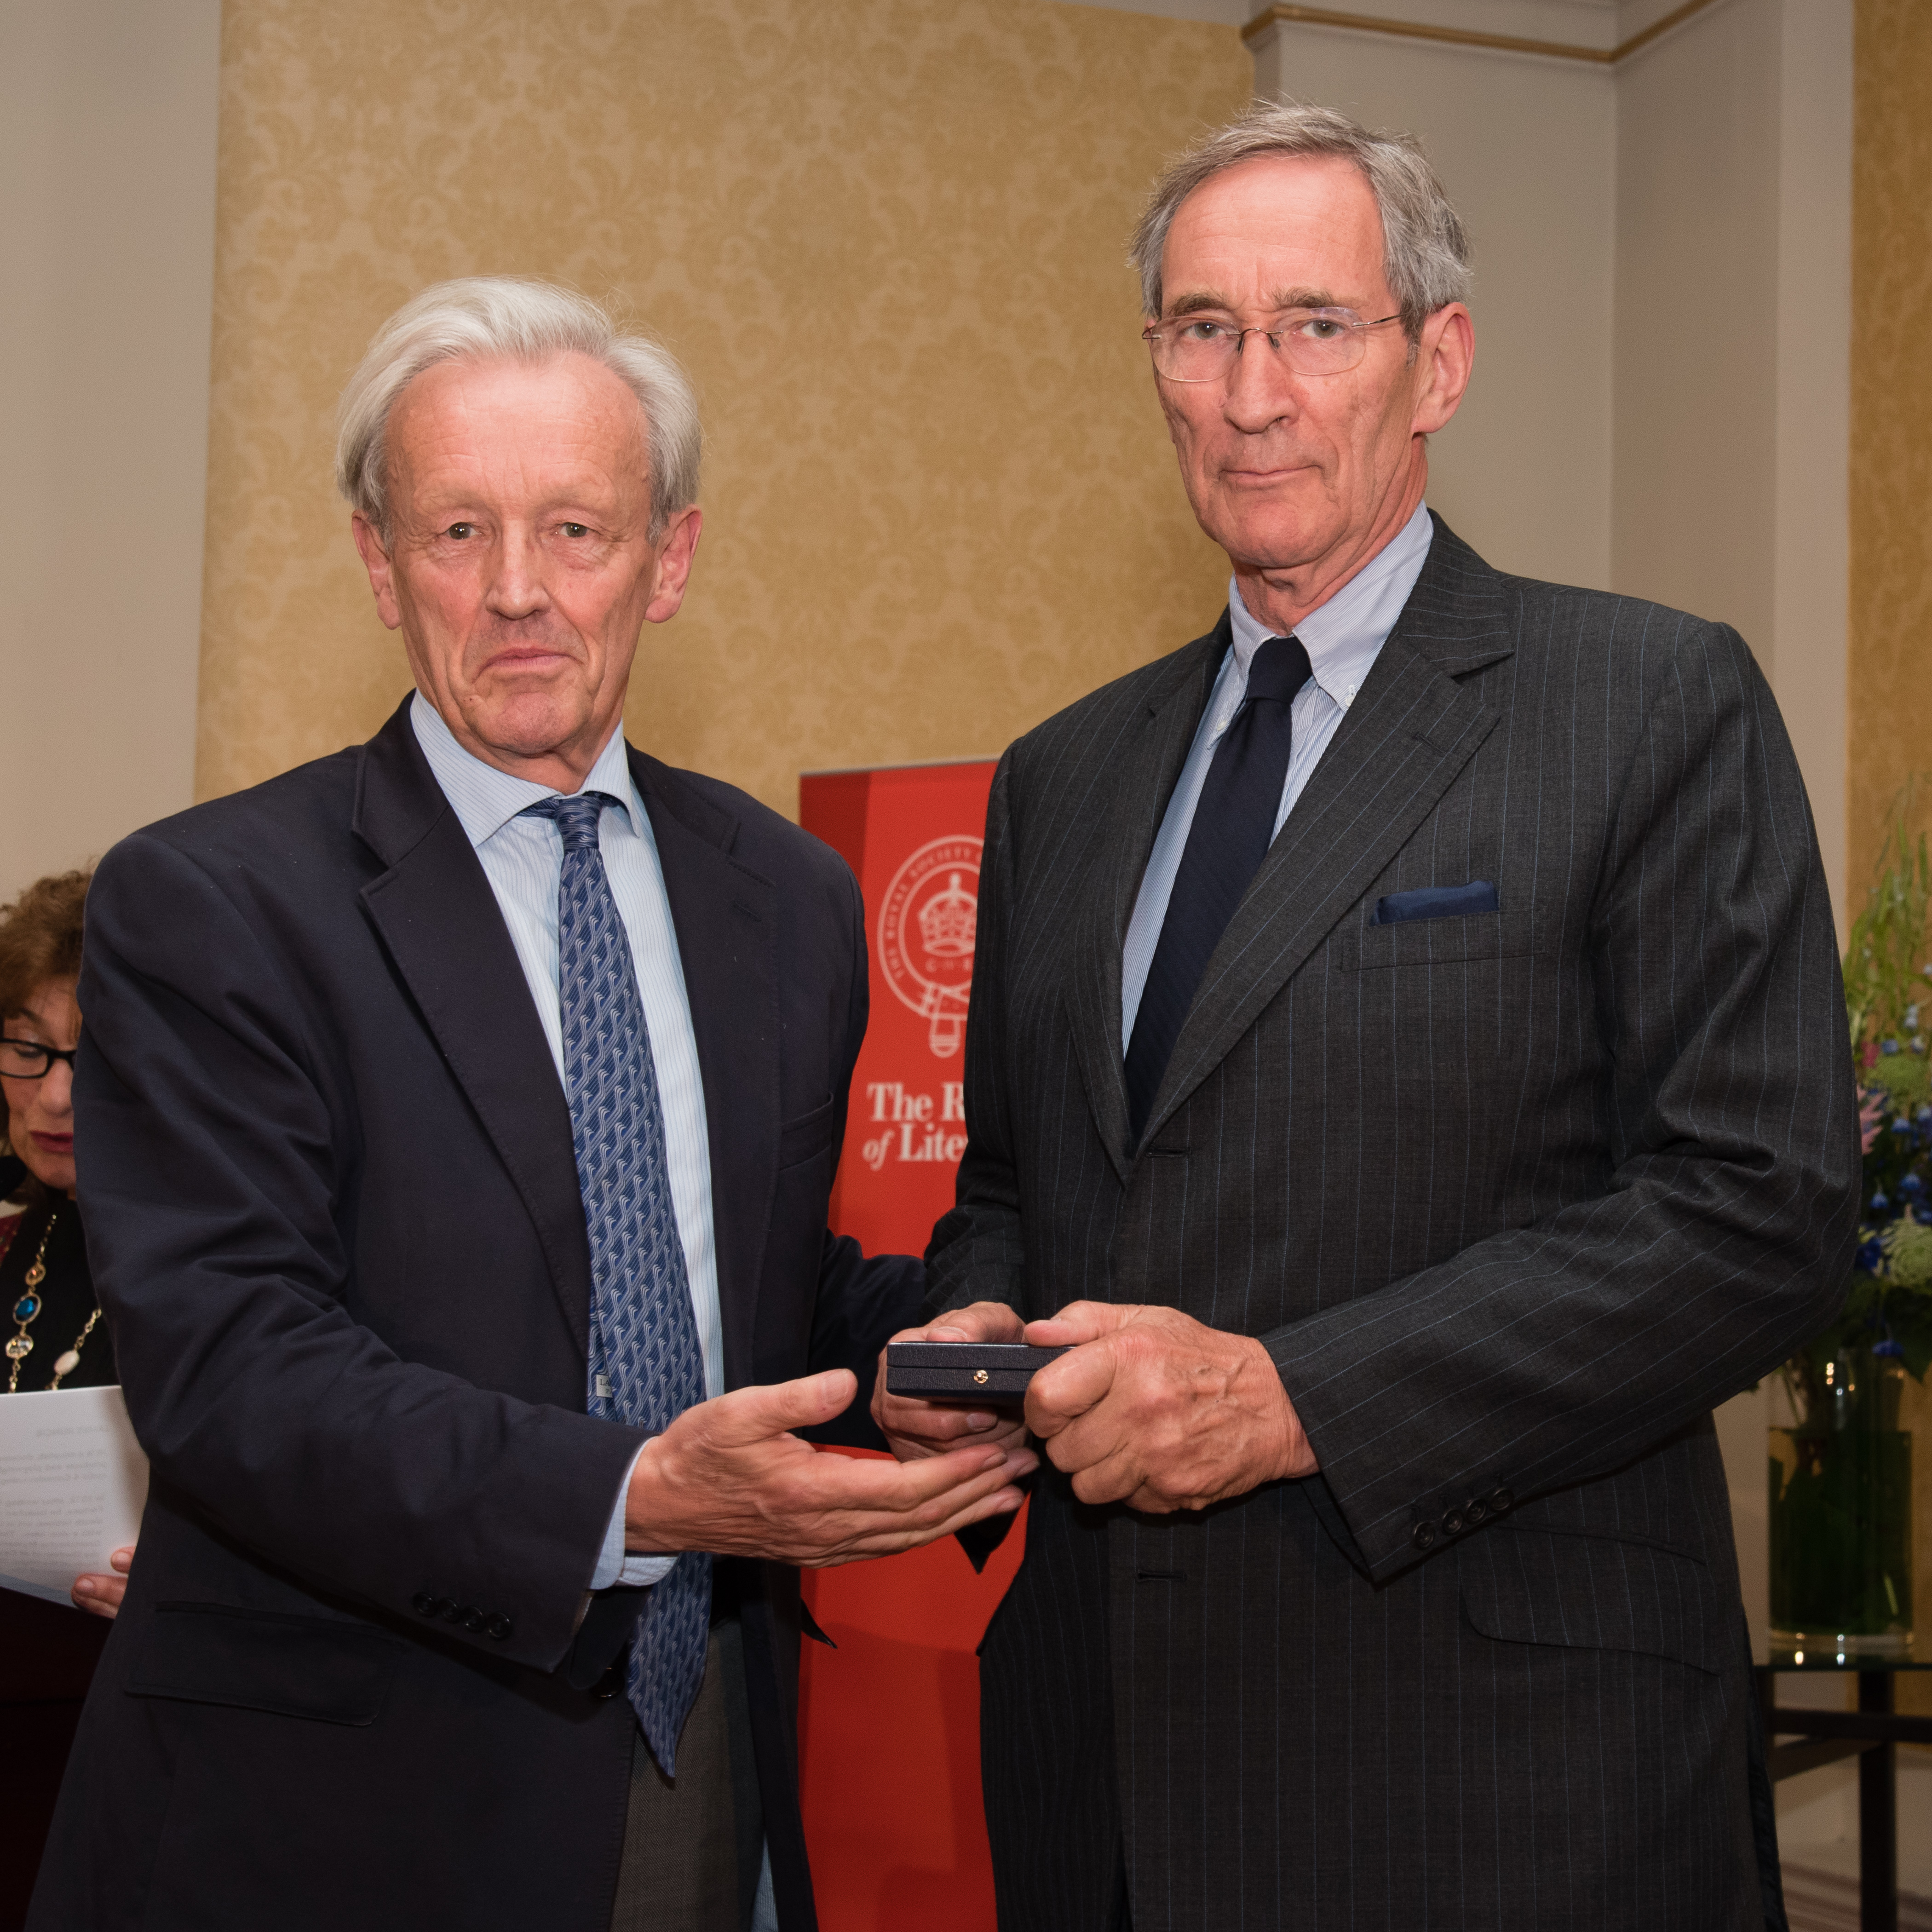 Christopher Maclehose receives the Benson Medal